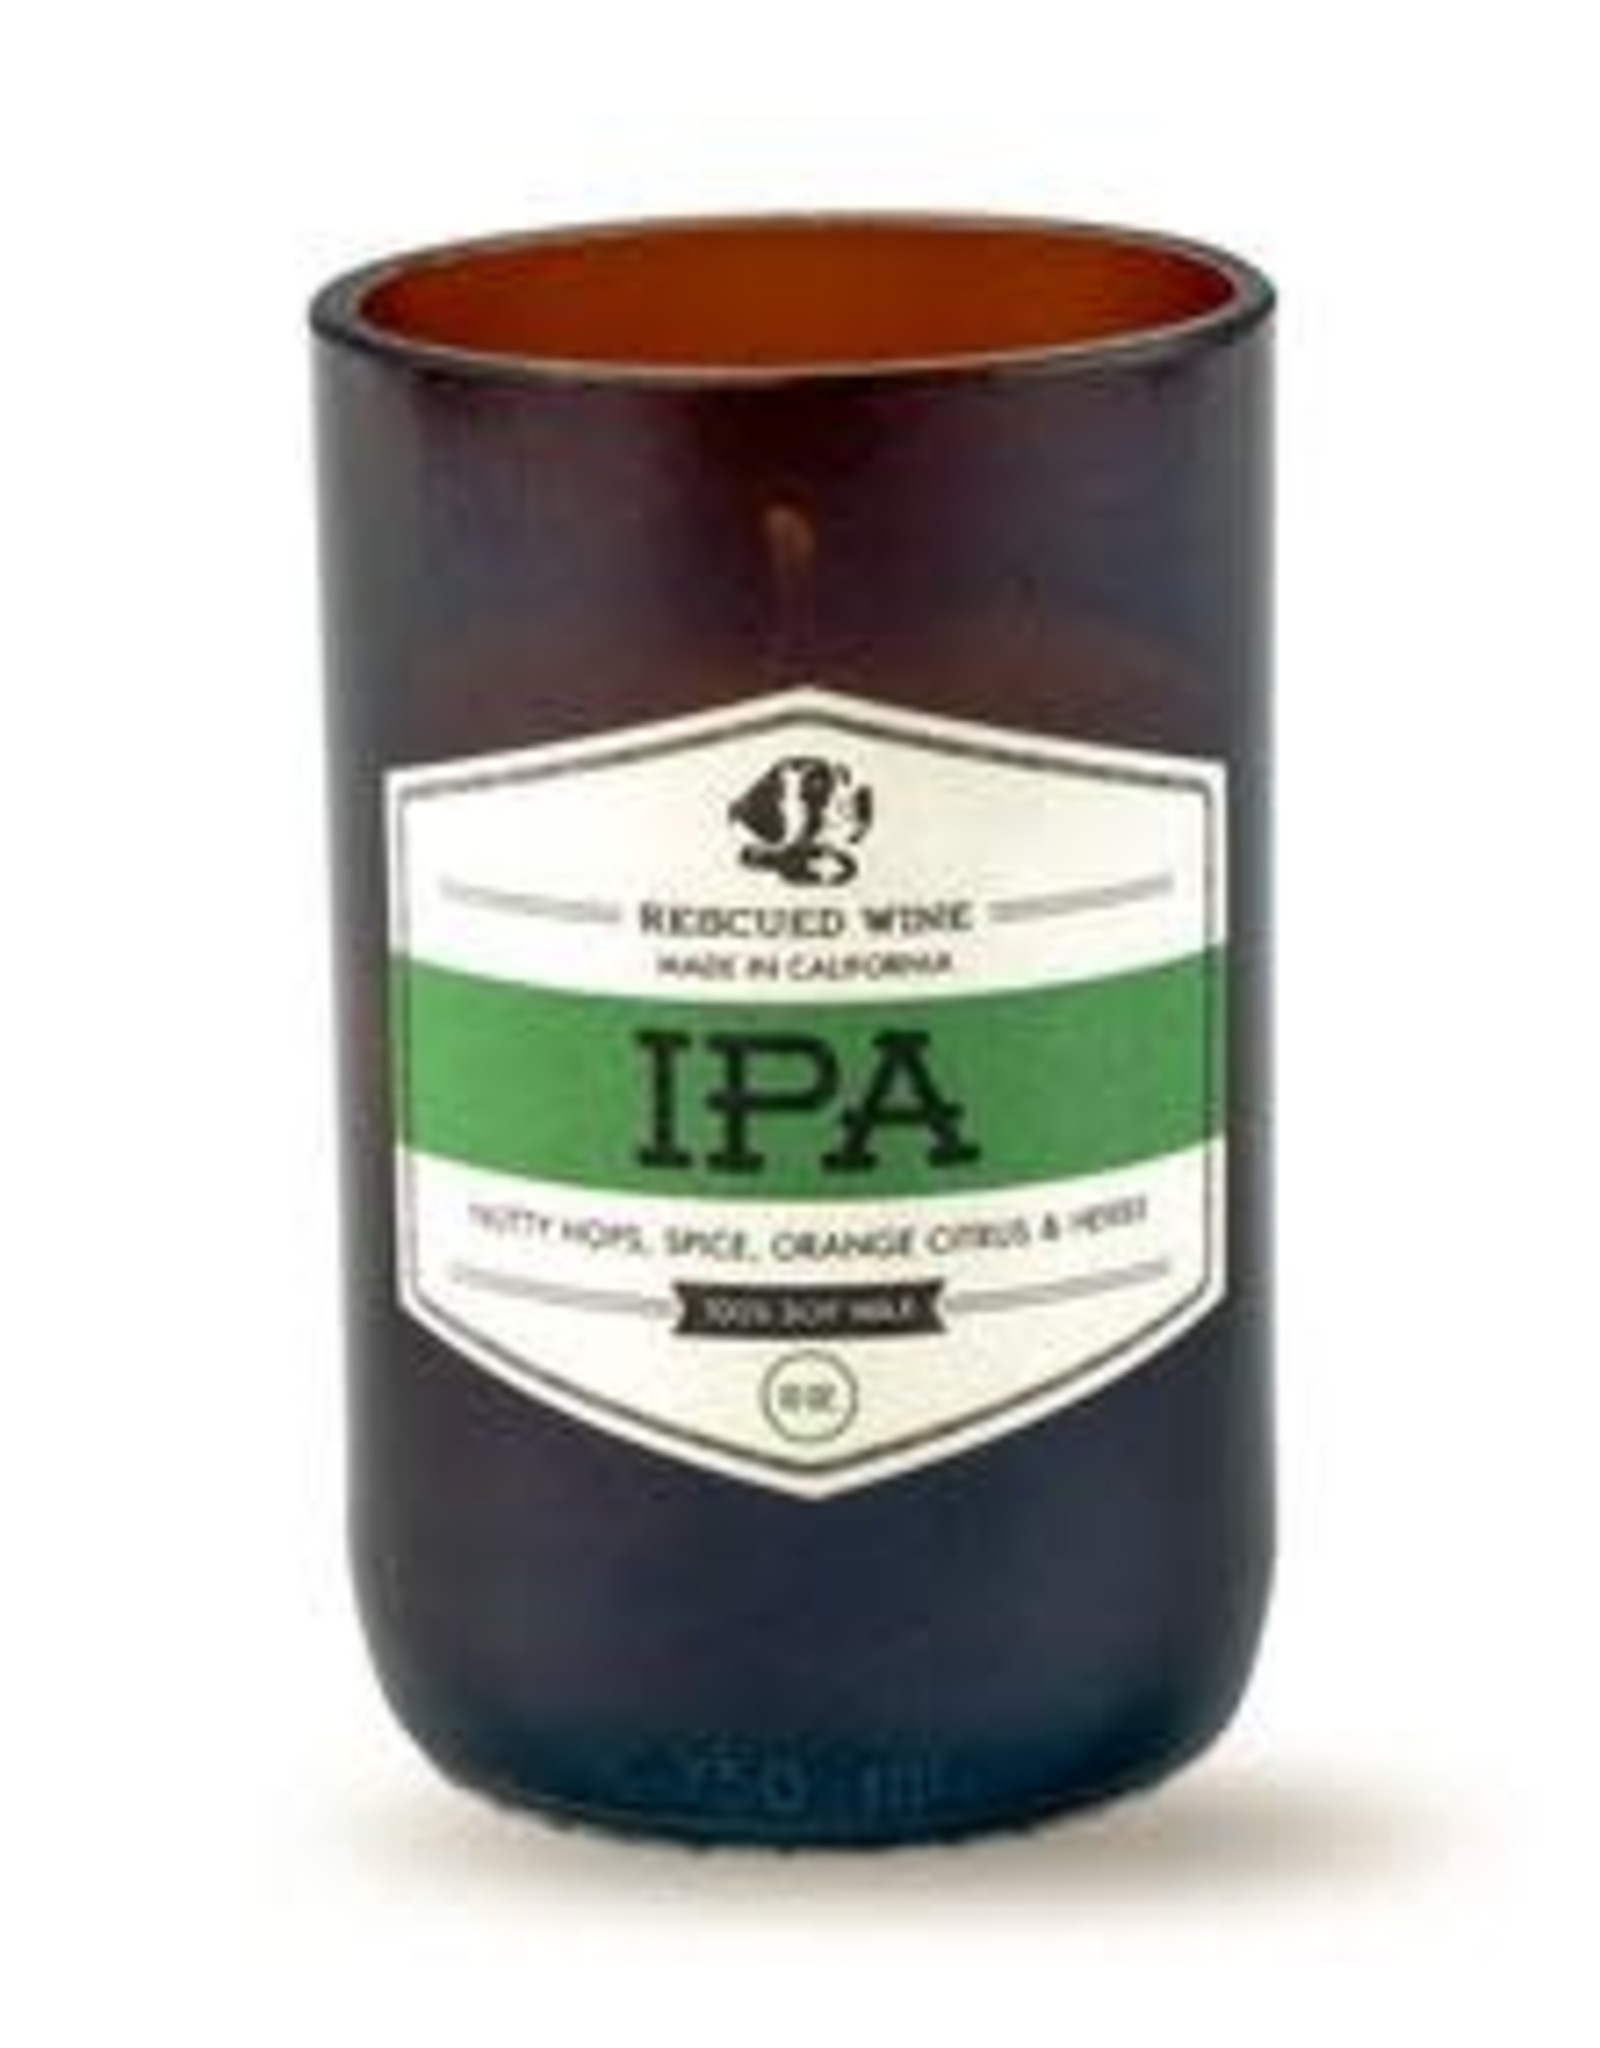 Rescue, Candles Ipa